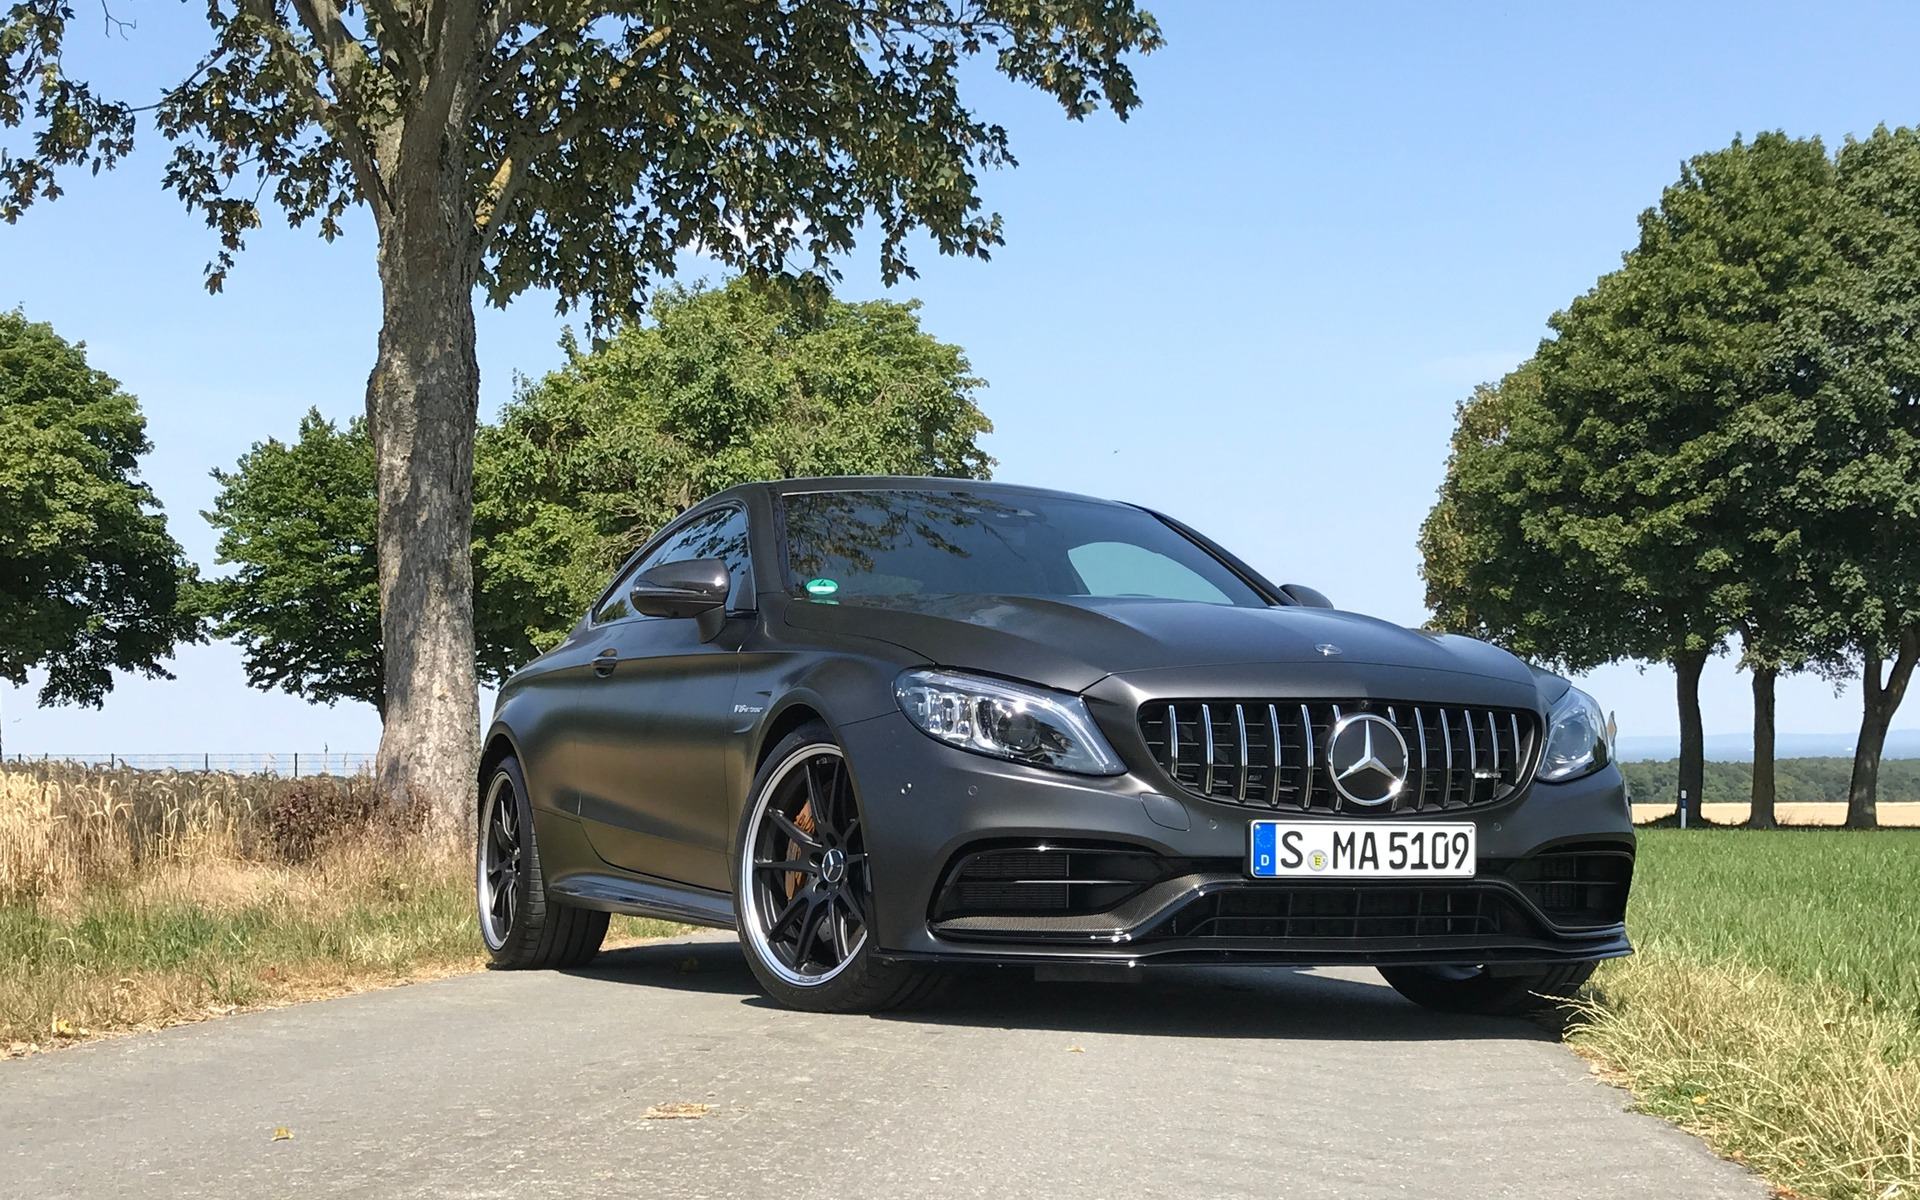 2019 mercedes amg c 63 the new benchmark the car guide. Black Bedroom Furniture Sets. Home Design Ideas